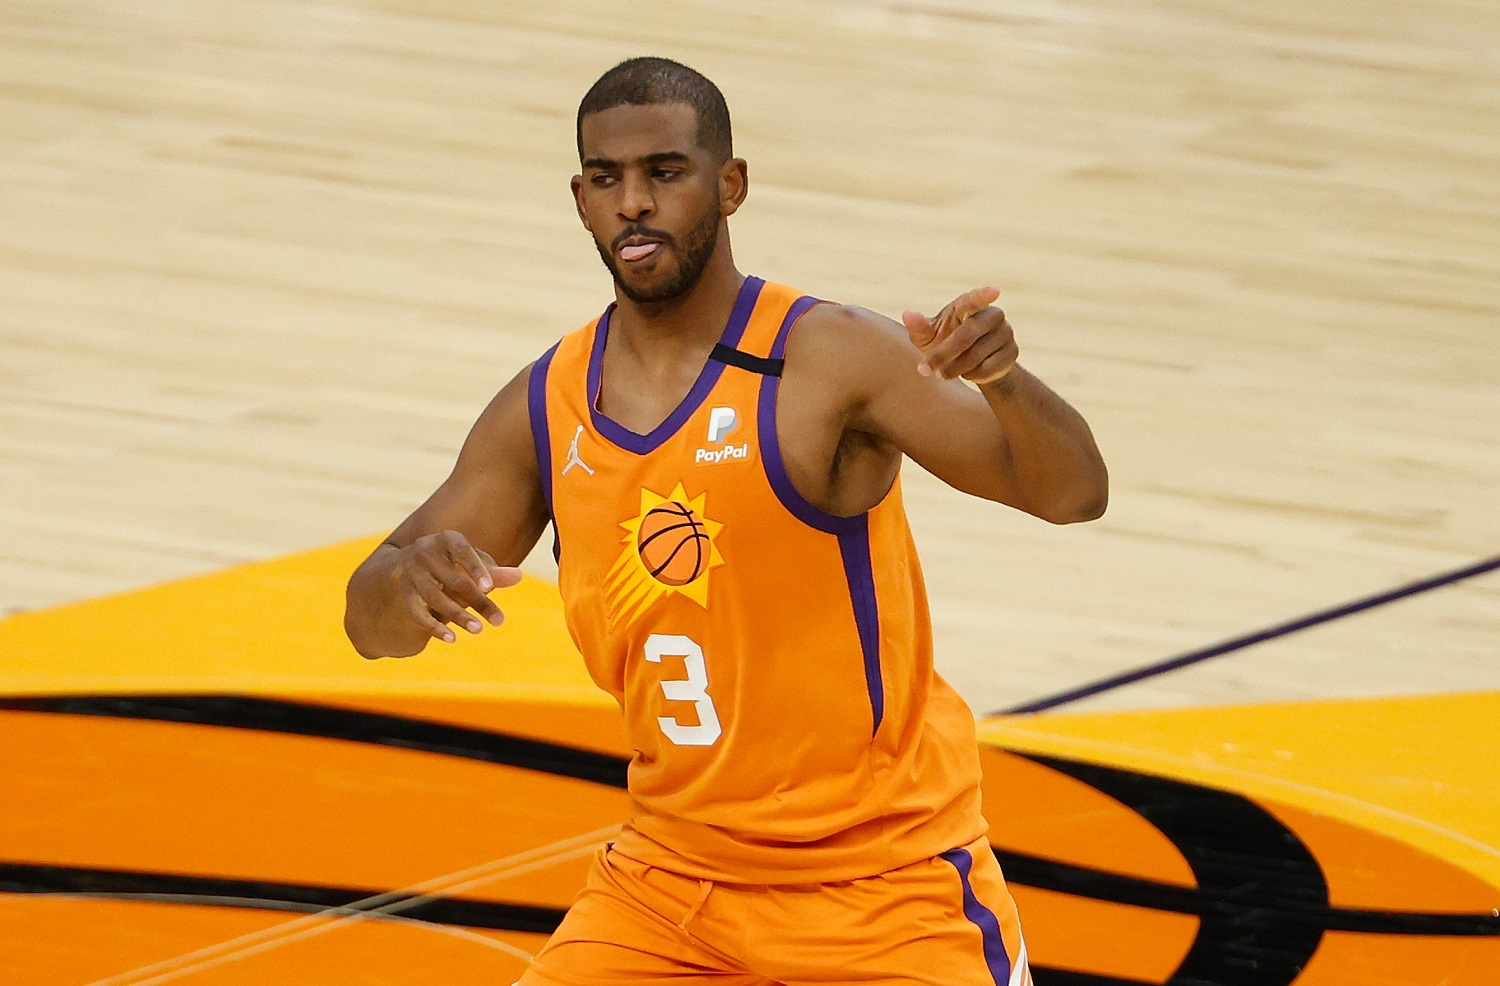 Phoenix Suns guard Chris Paul trolled the Minnesota Timberwolves while moving closer to 10,000 assists in his NBA career.